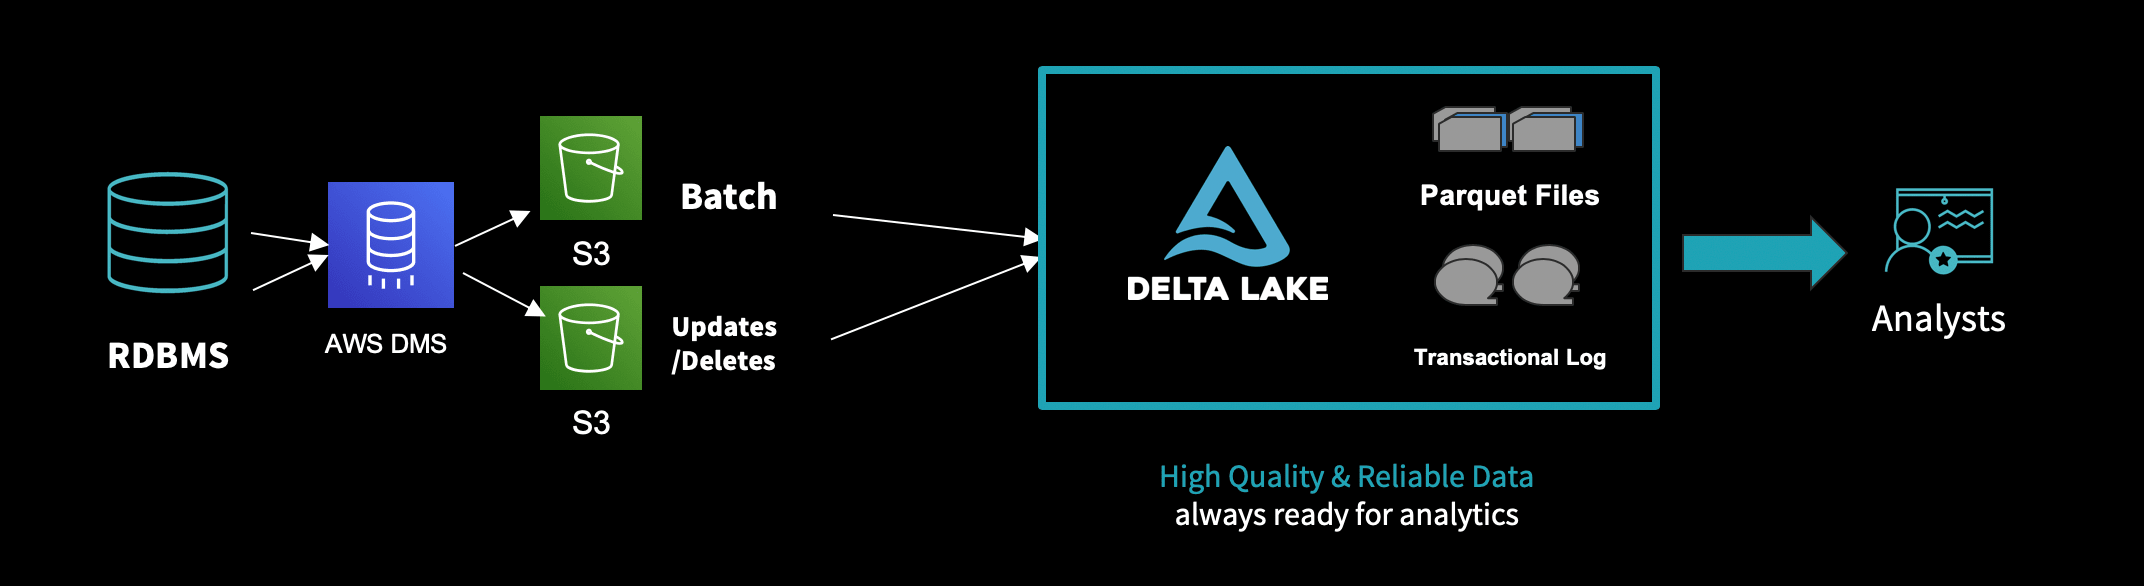 Migrating Transactional Data to a Delta Lake using AWS DMS